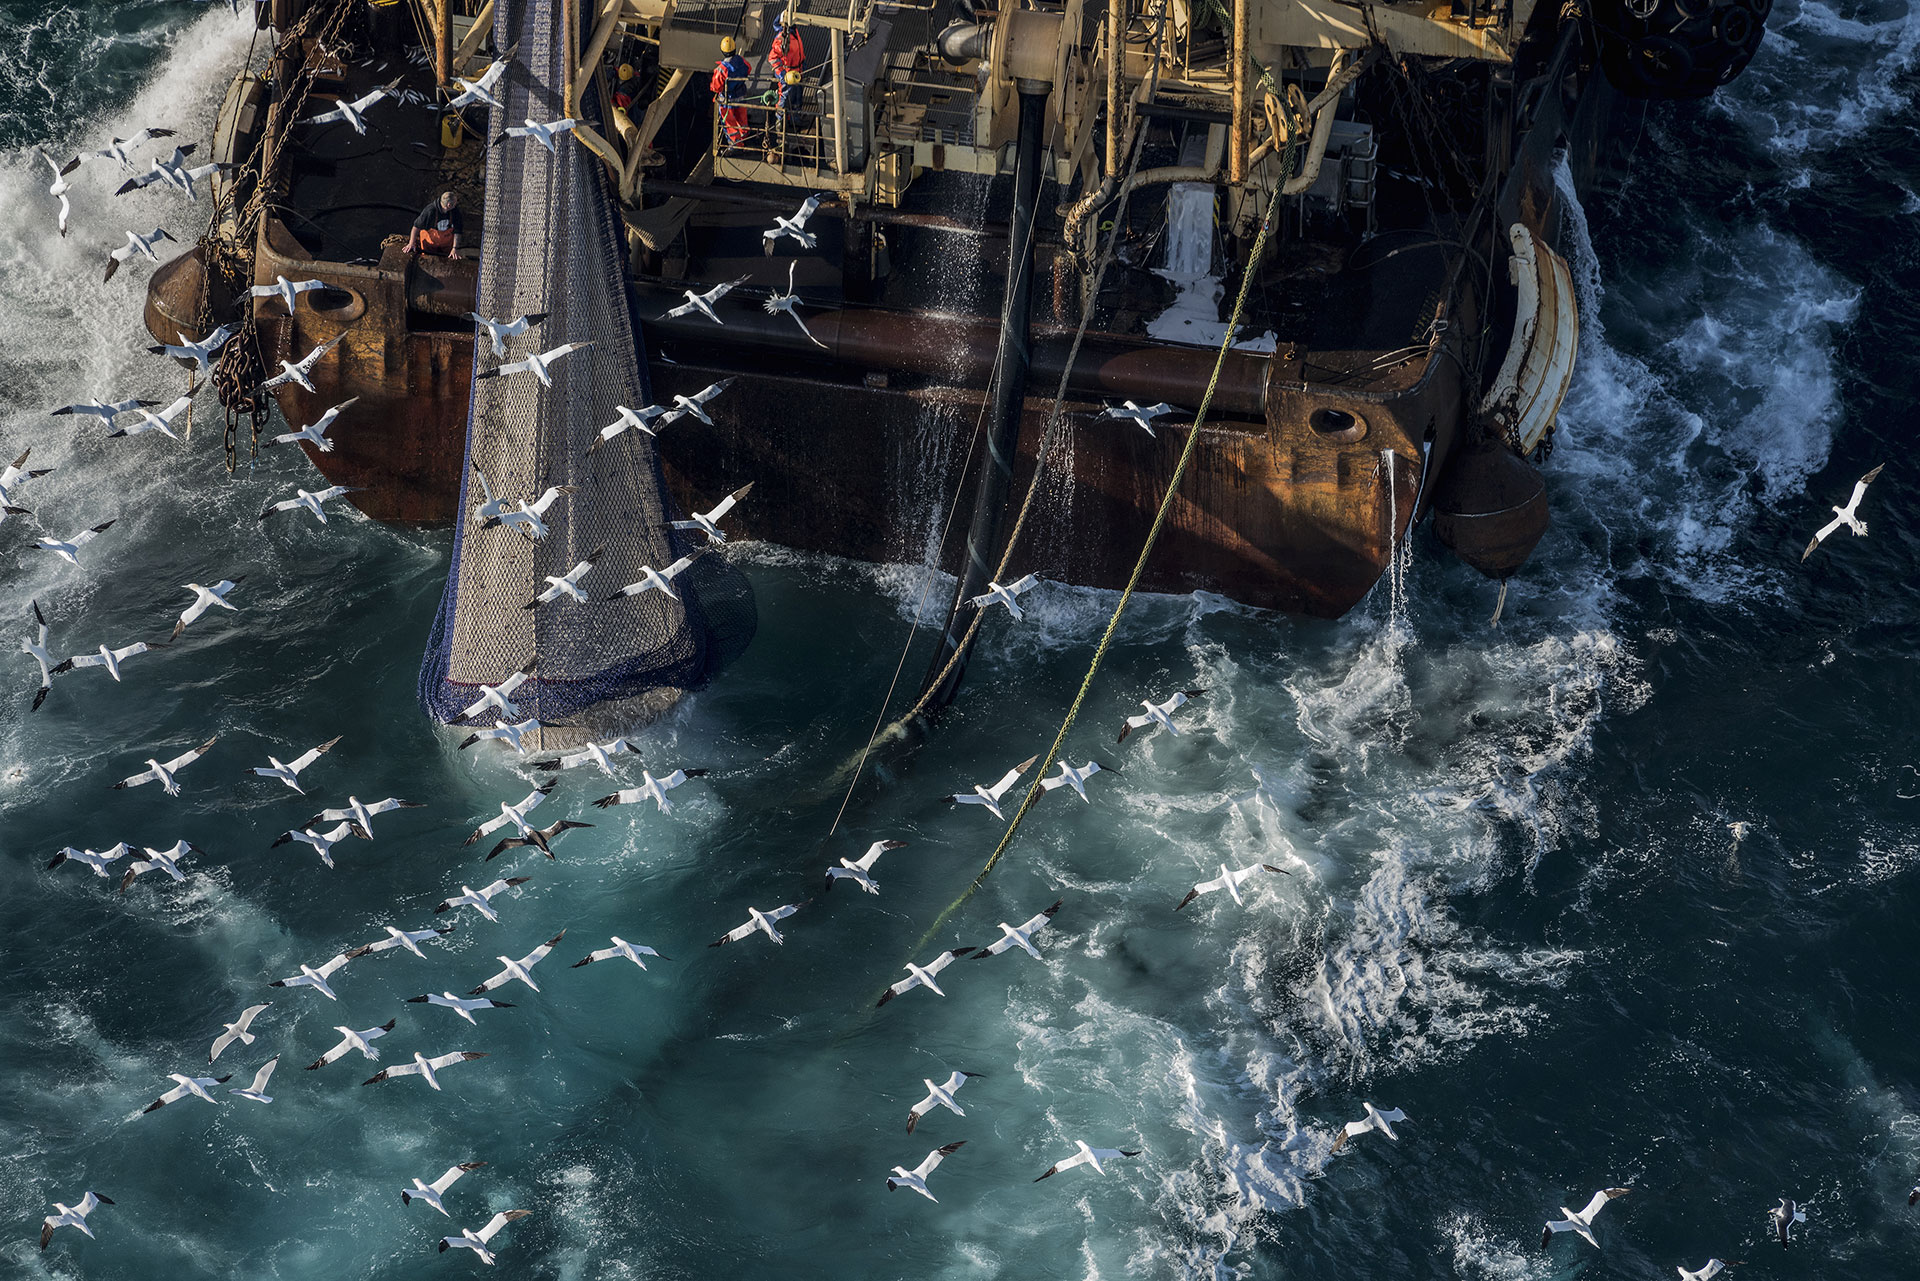 Fishing Activities in the English Channel © Christian Åslund / Greenpeace